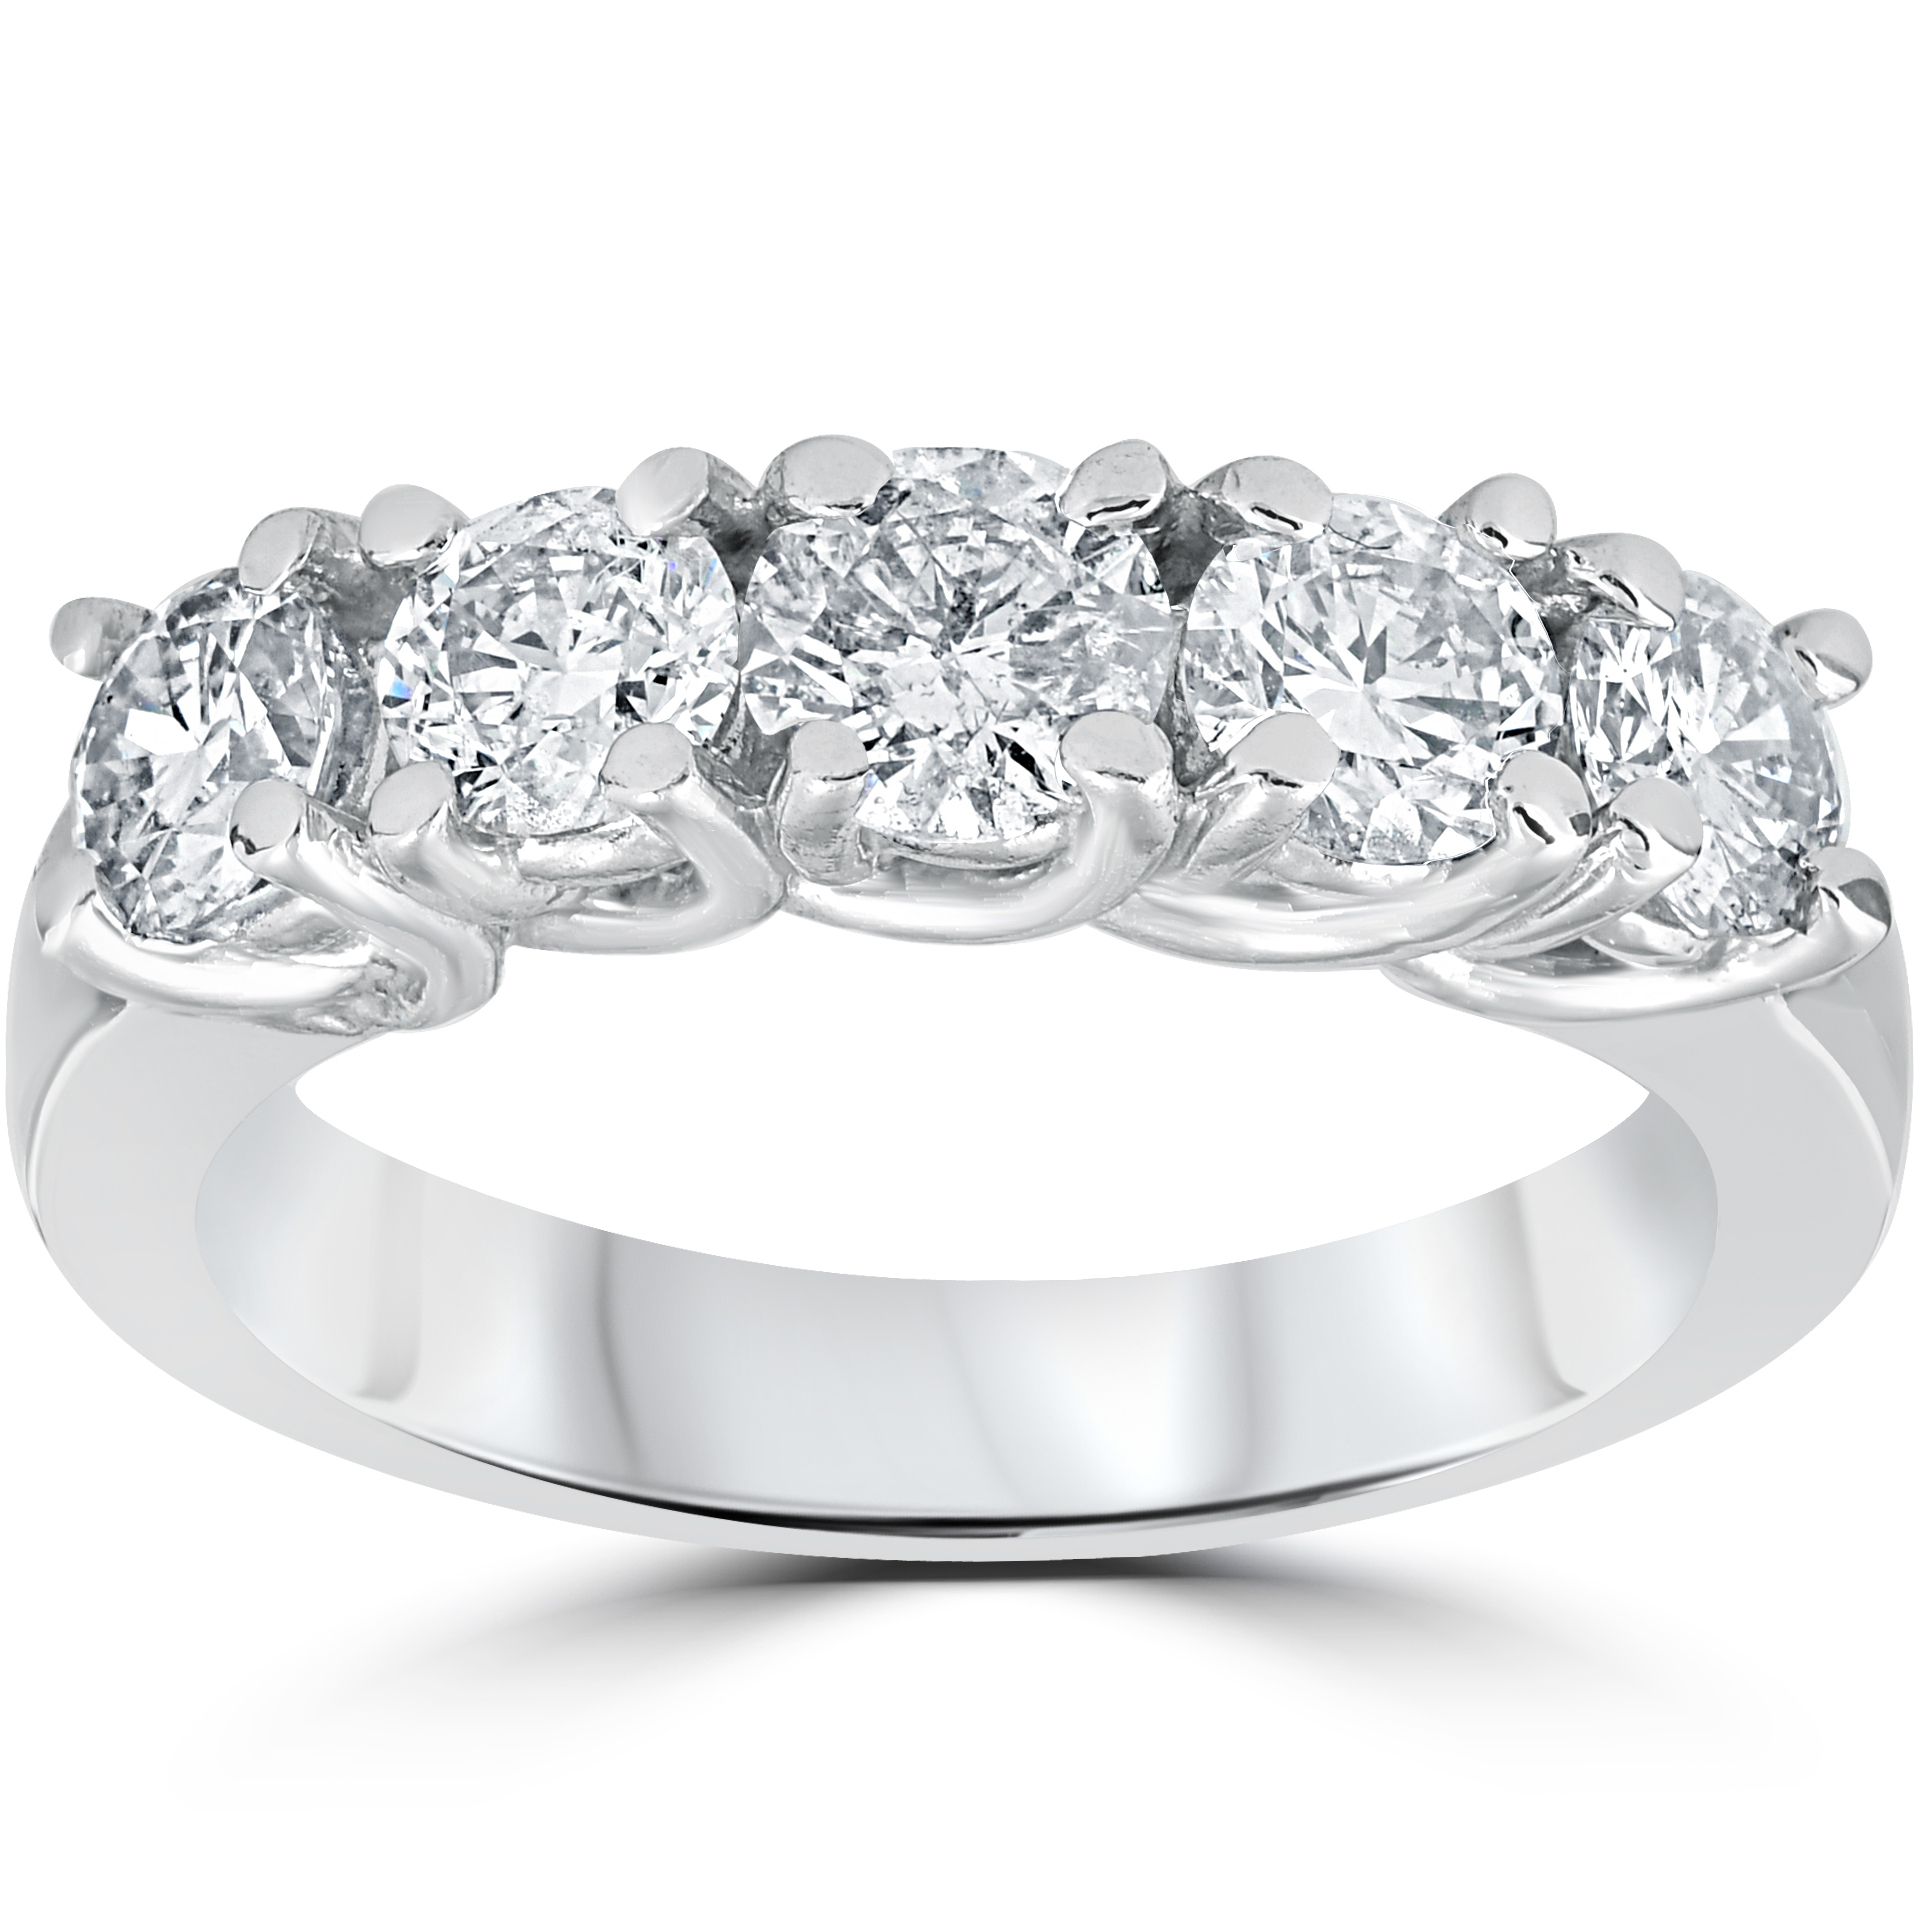 Wedding Ring : Women Rings With Diamonds Pics Wide Diamond In Current Diamond Bold Five Stone Anniversary Bands In White Gold (View 12 of 25)